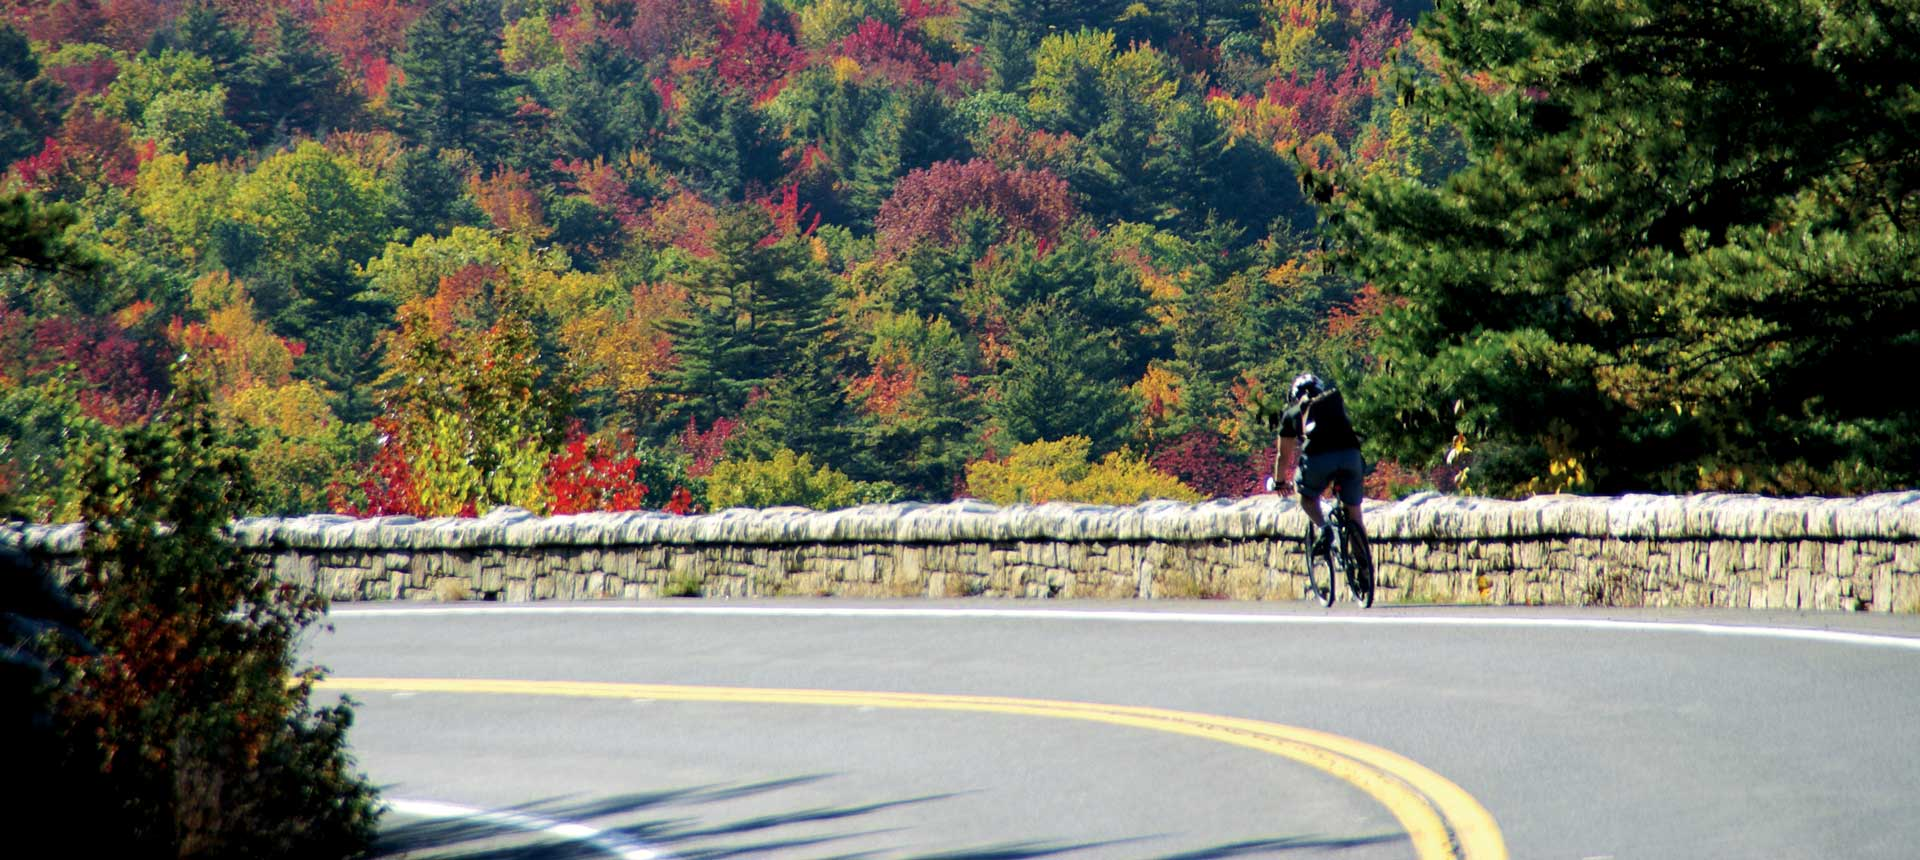 Bicyclist on Route 299